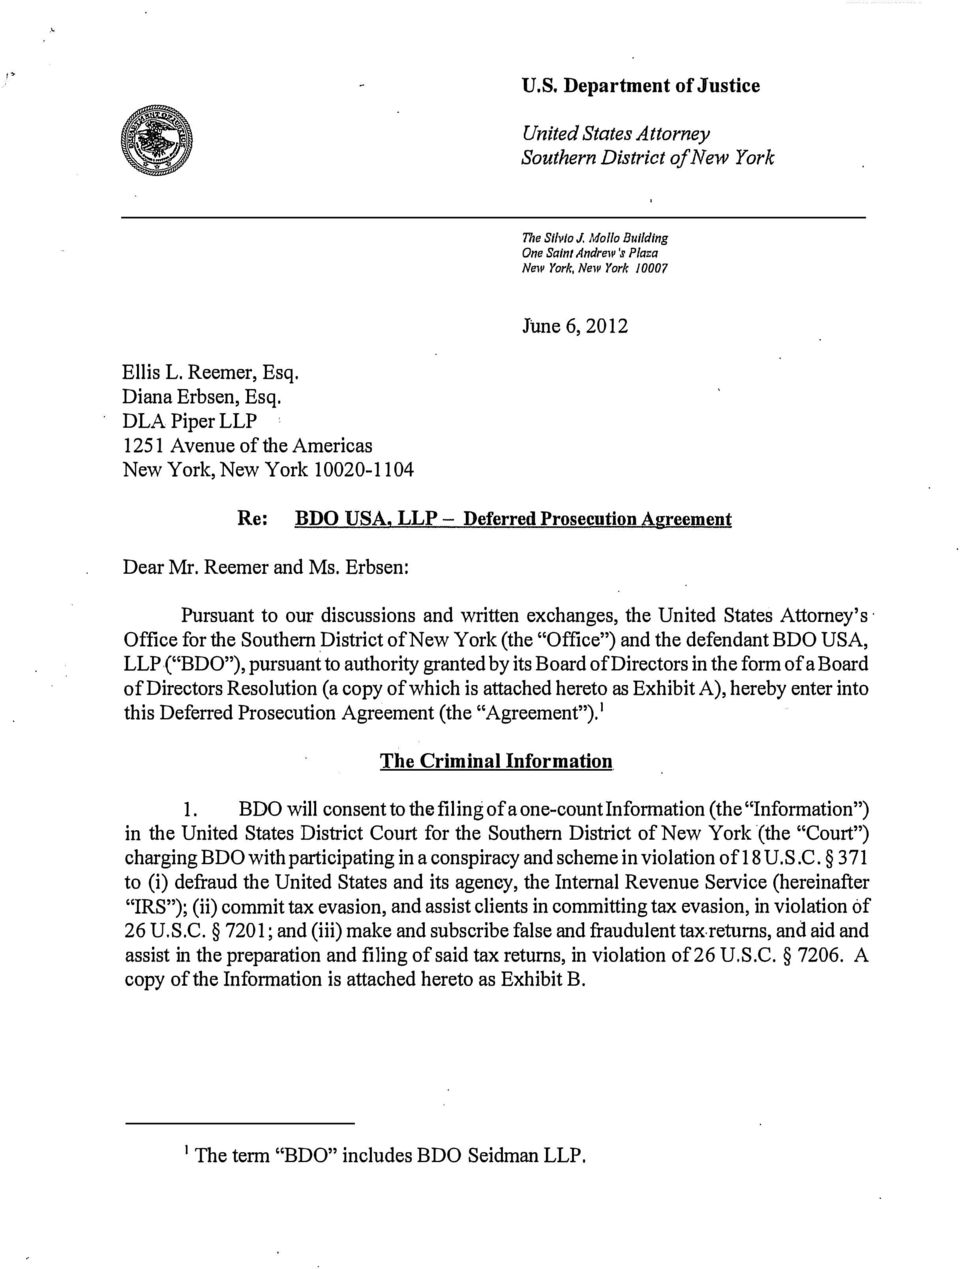 United States Attorney Southern District of New York - PDF